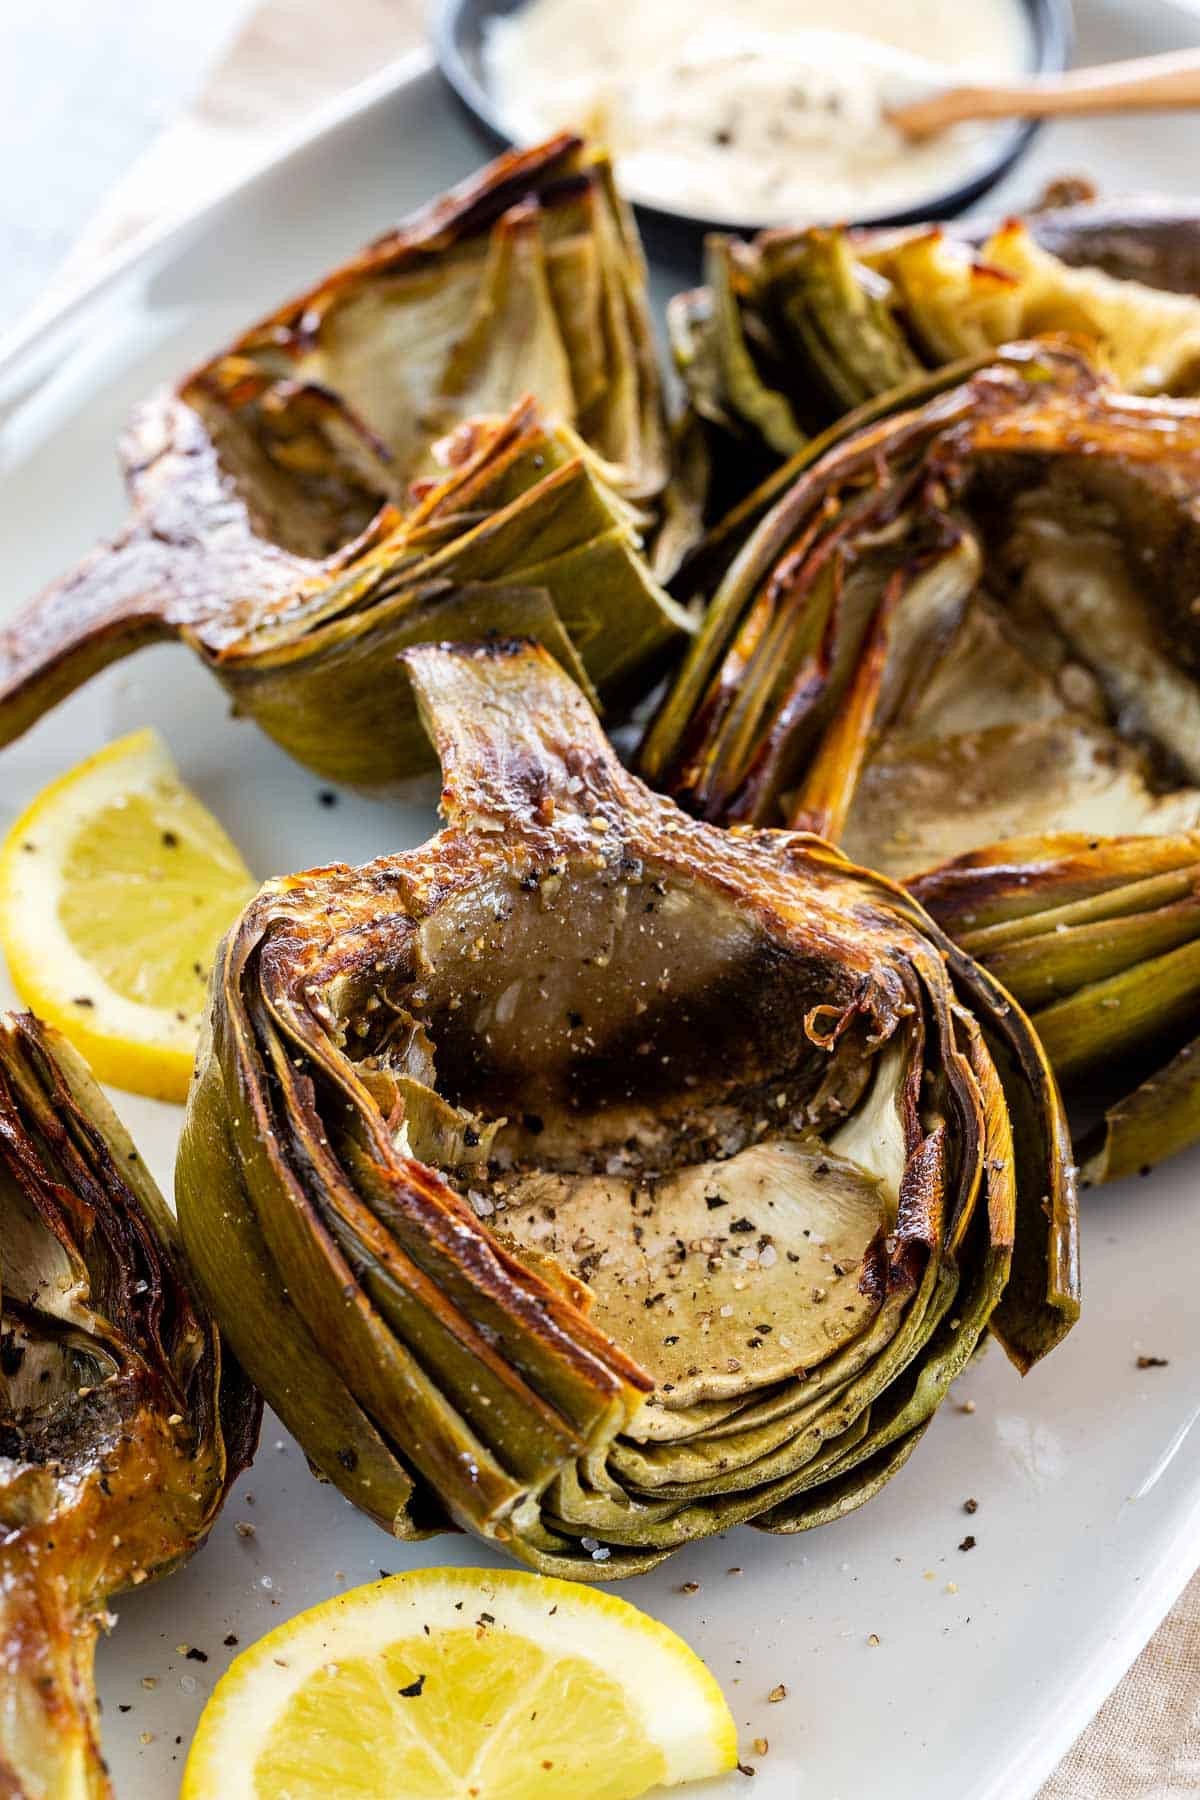 Roasted artichokes are a stunning appetizer! This technique develops deep caramelized flavors in the artichoke heart and the meaty leaves. #roastedartichokes #artichokes #appetizer #vegetarian